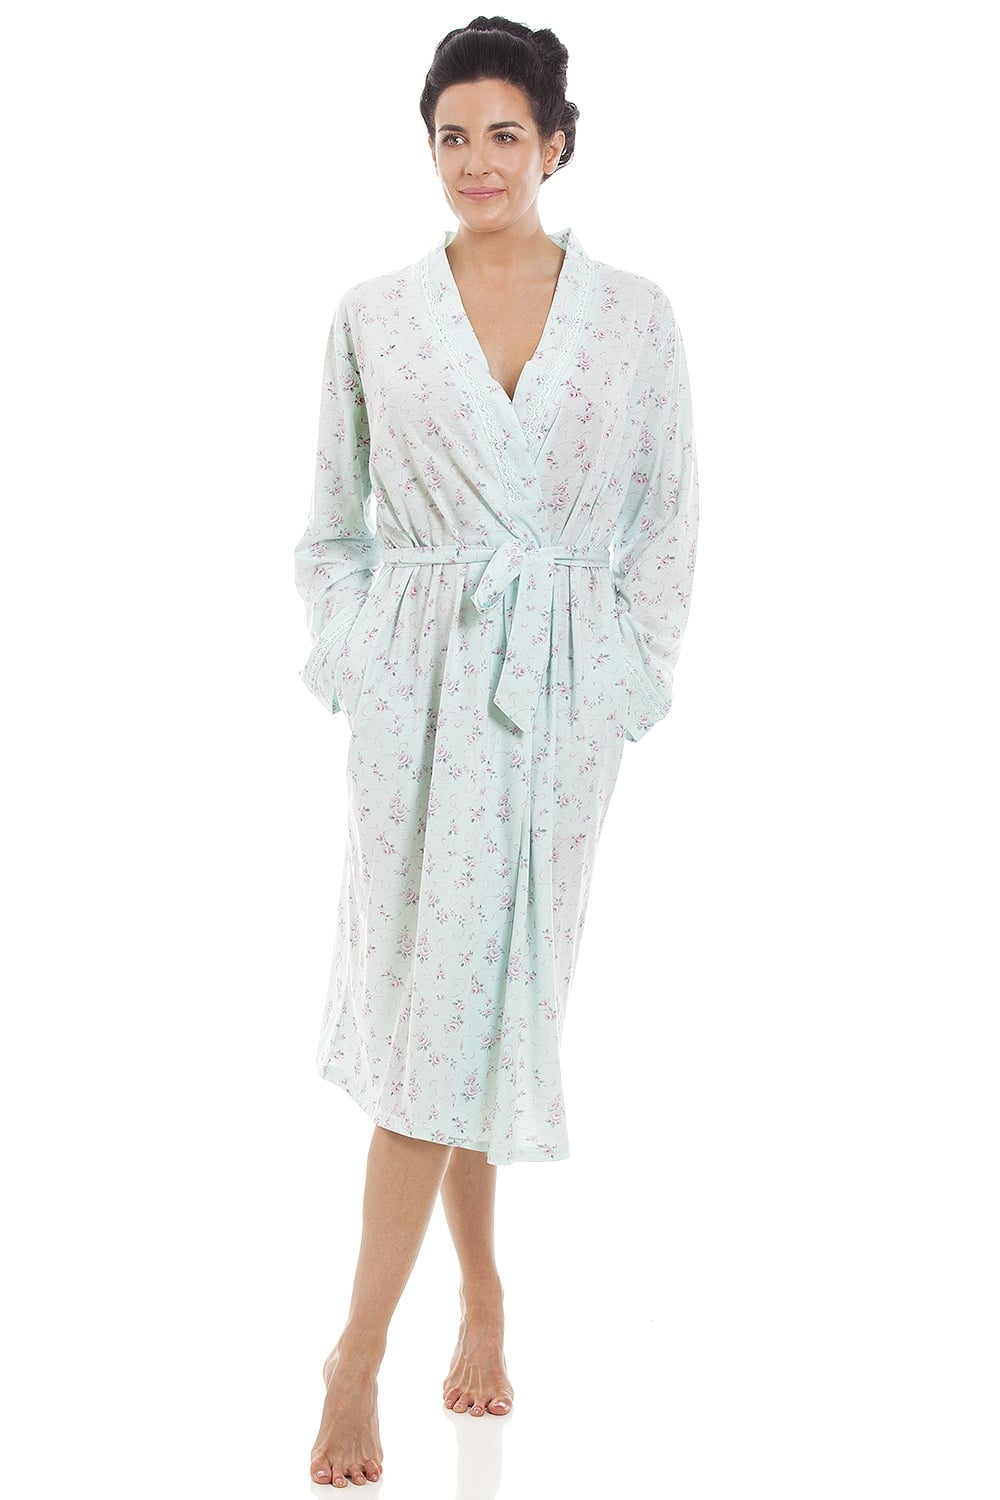 Ladies Pink Floral Print Jersey Knit Cotton Dressing Gown